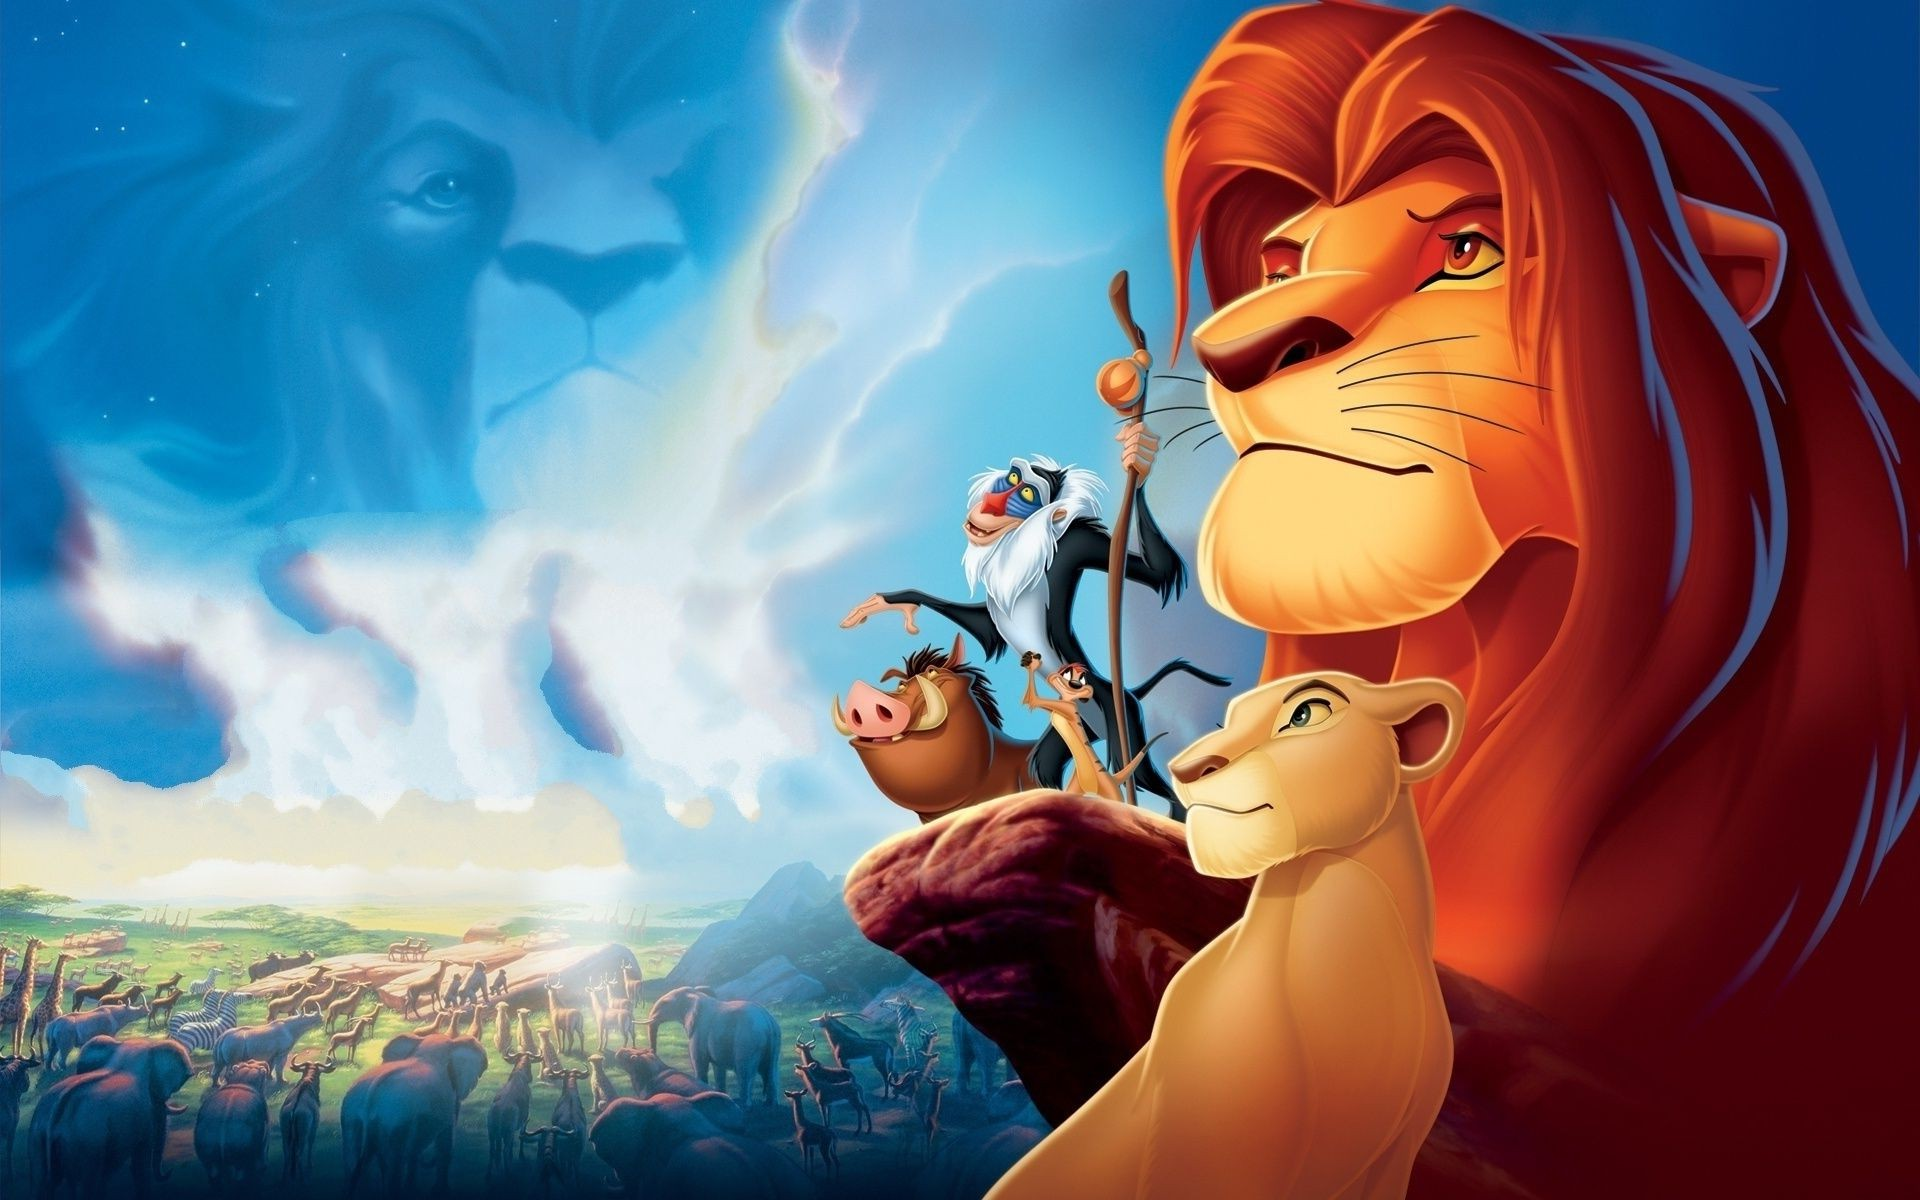 Gathering At The Rock From The Cartoon The Lion King Android